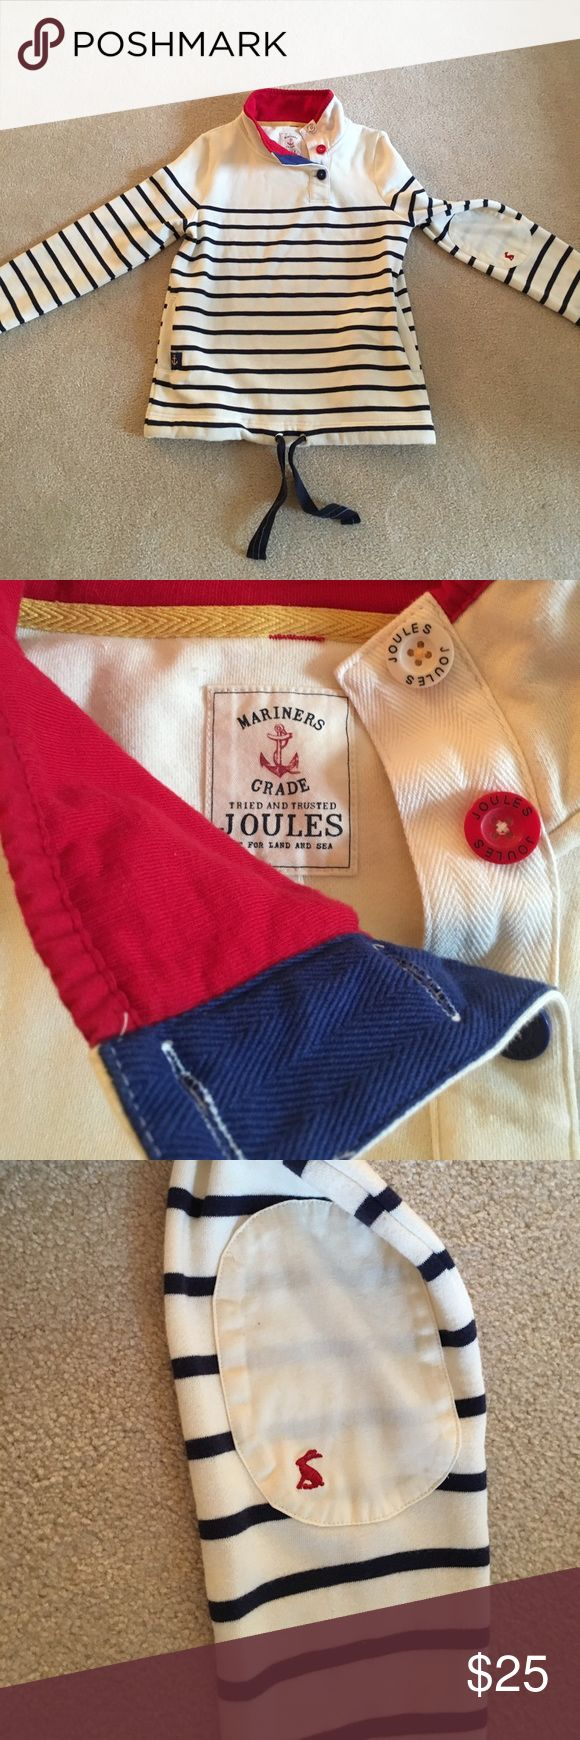 Mariners Grade Joules top Size 4, sweatshirt material, never worn, very cute mariners grade joules Tops Sweatshirts & Hoodies